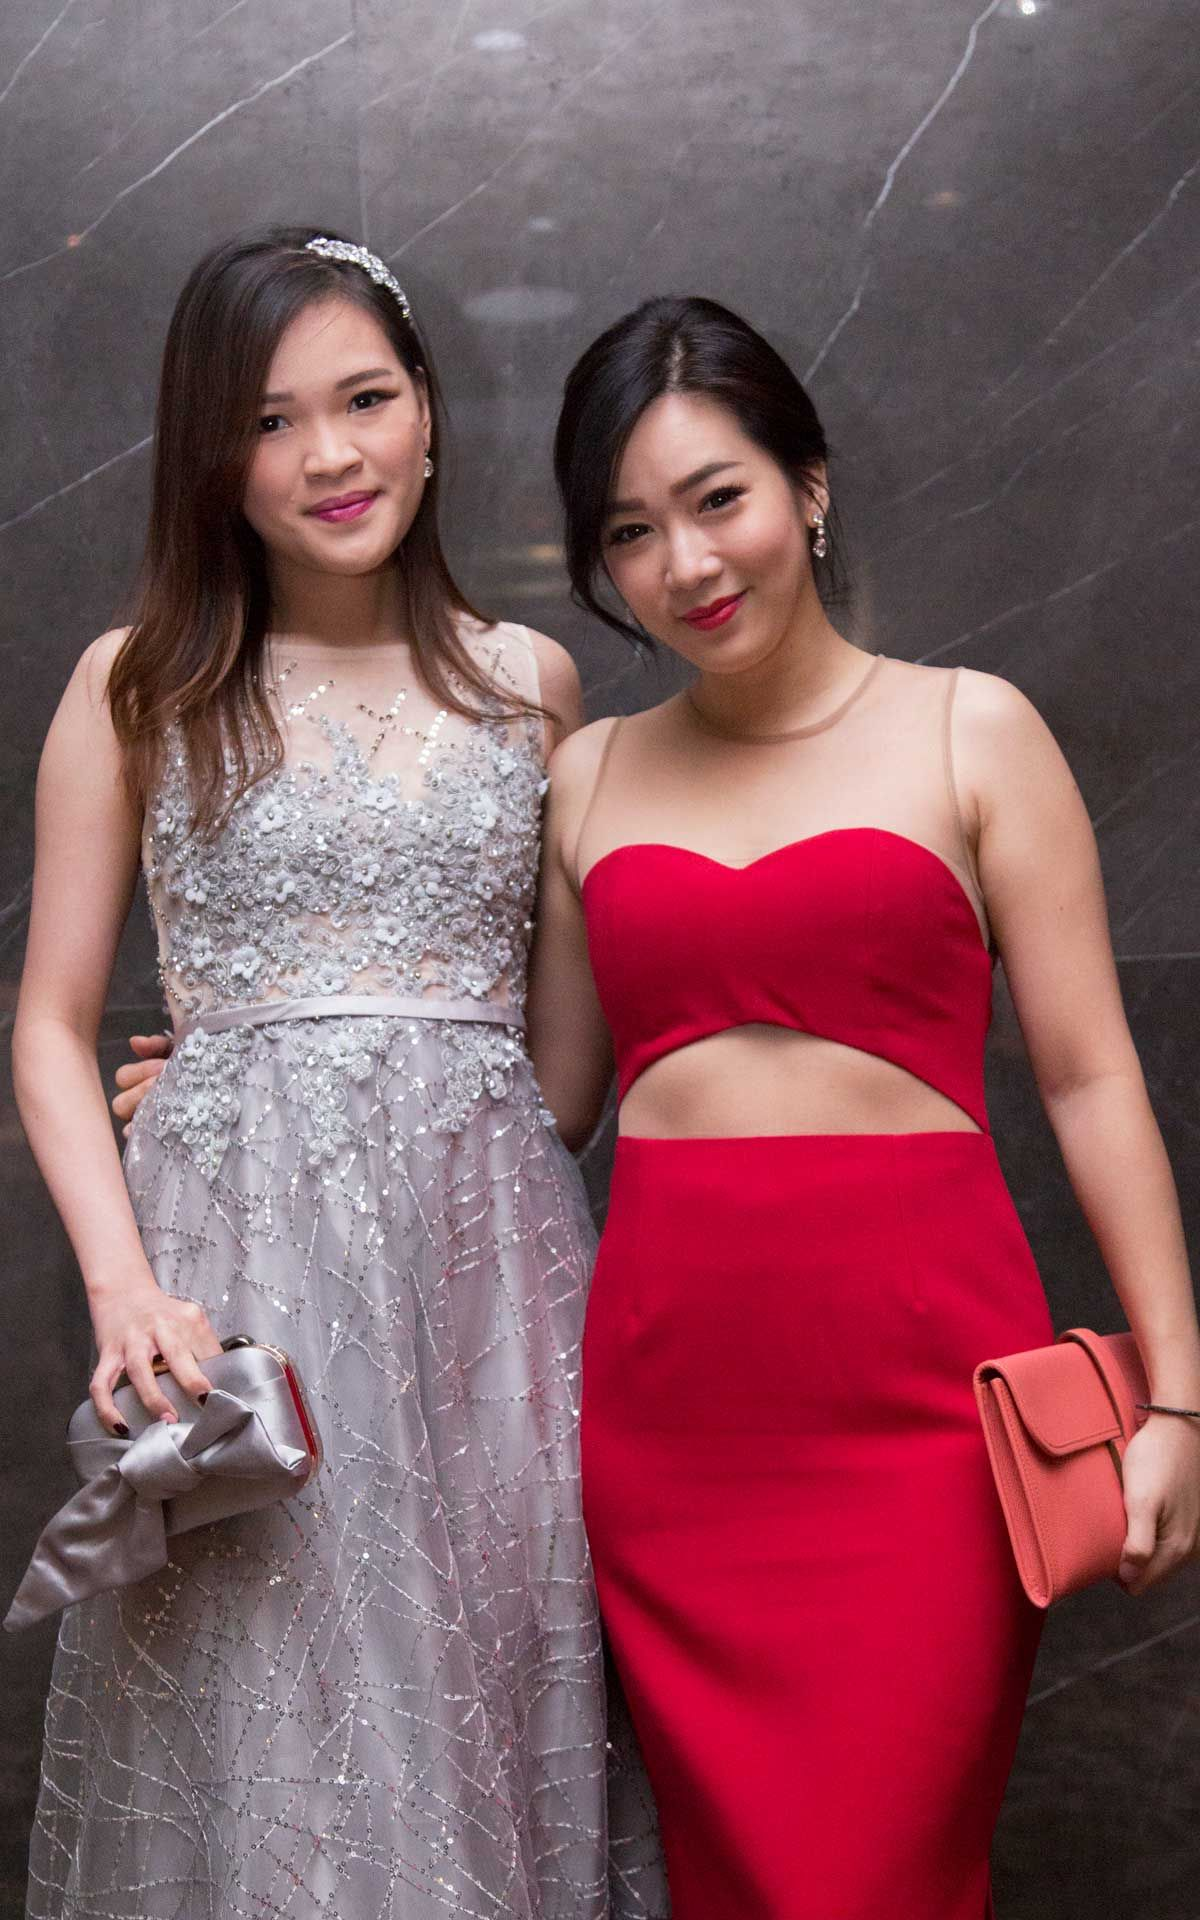 Jyy Yeen Tan and Shaine Wong